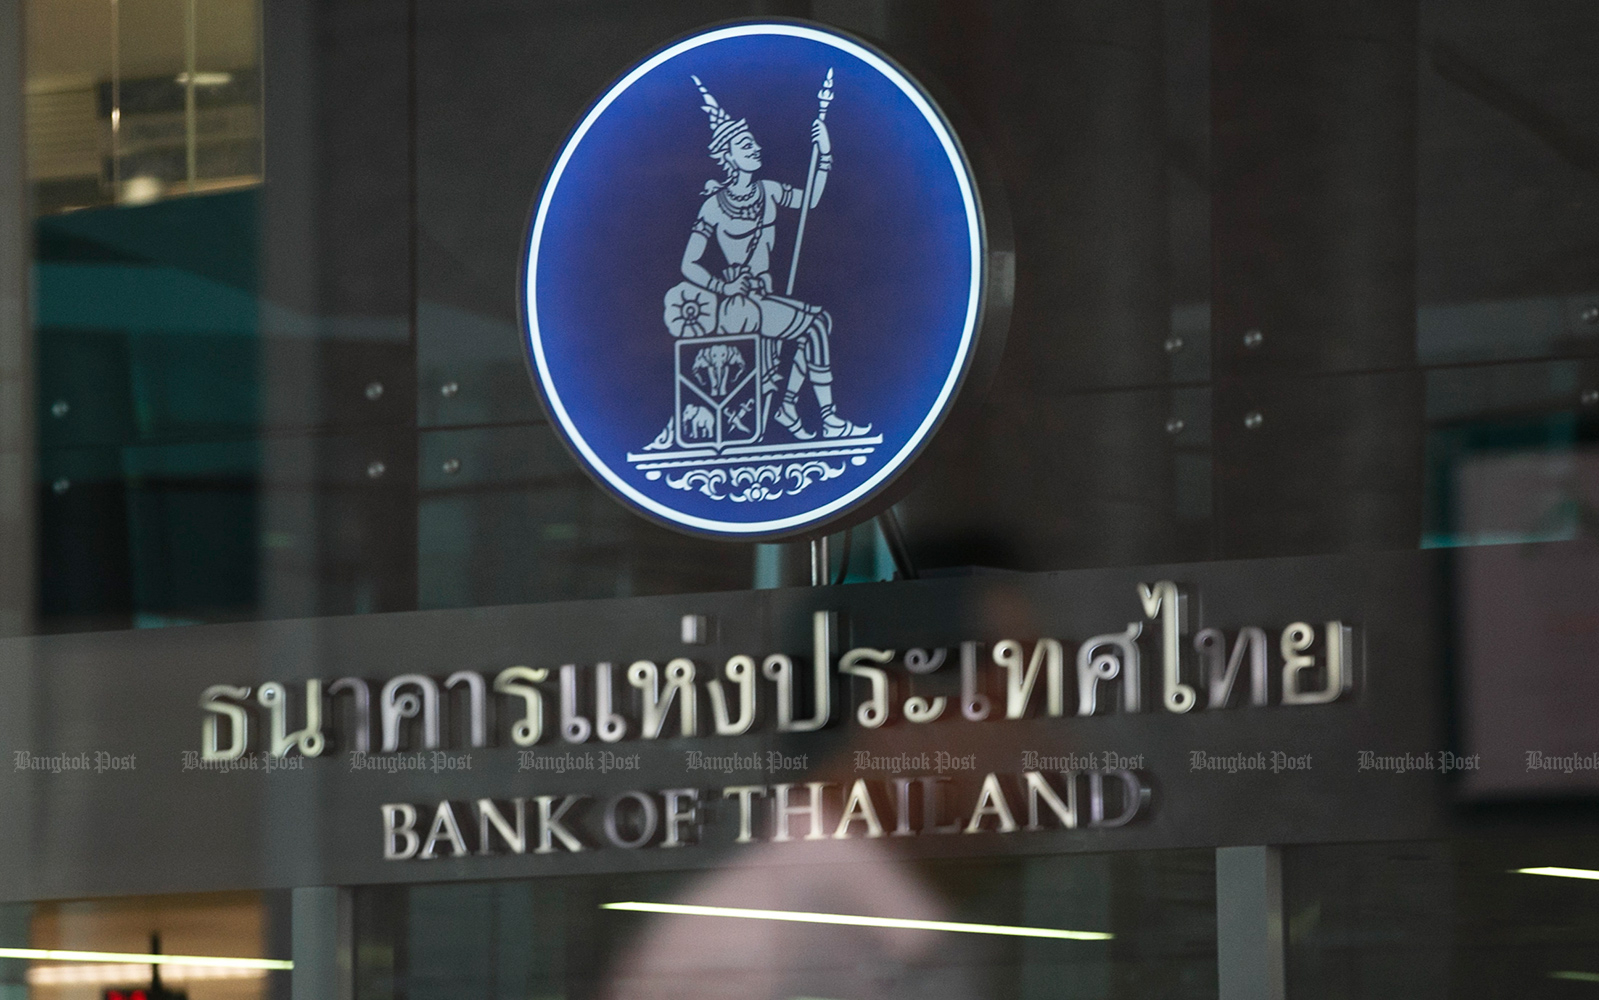 Thailand's economic growth in the third quarter is likely to improve from the second quarter's reading, says the Bank of Thailand.